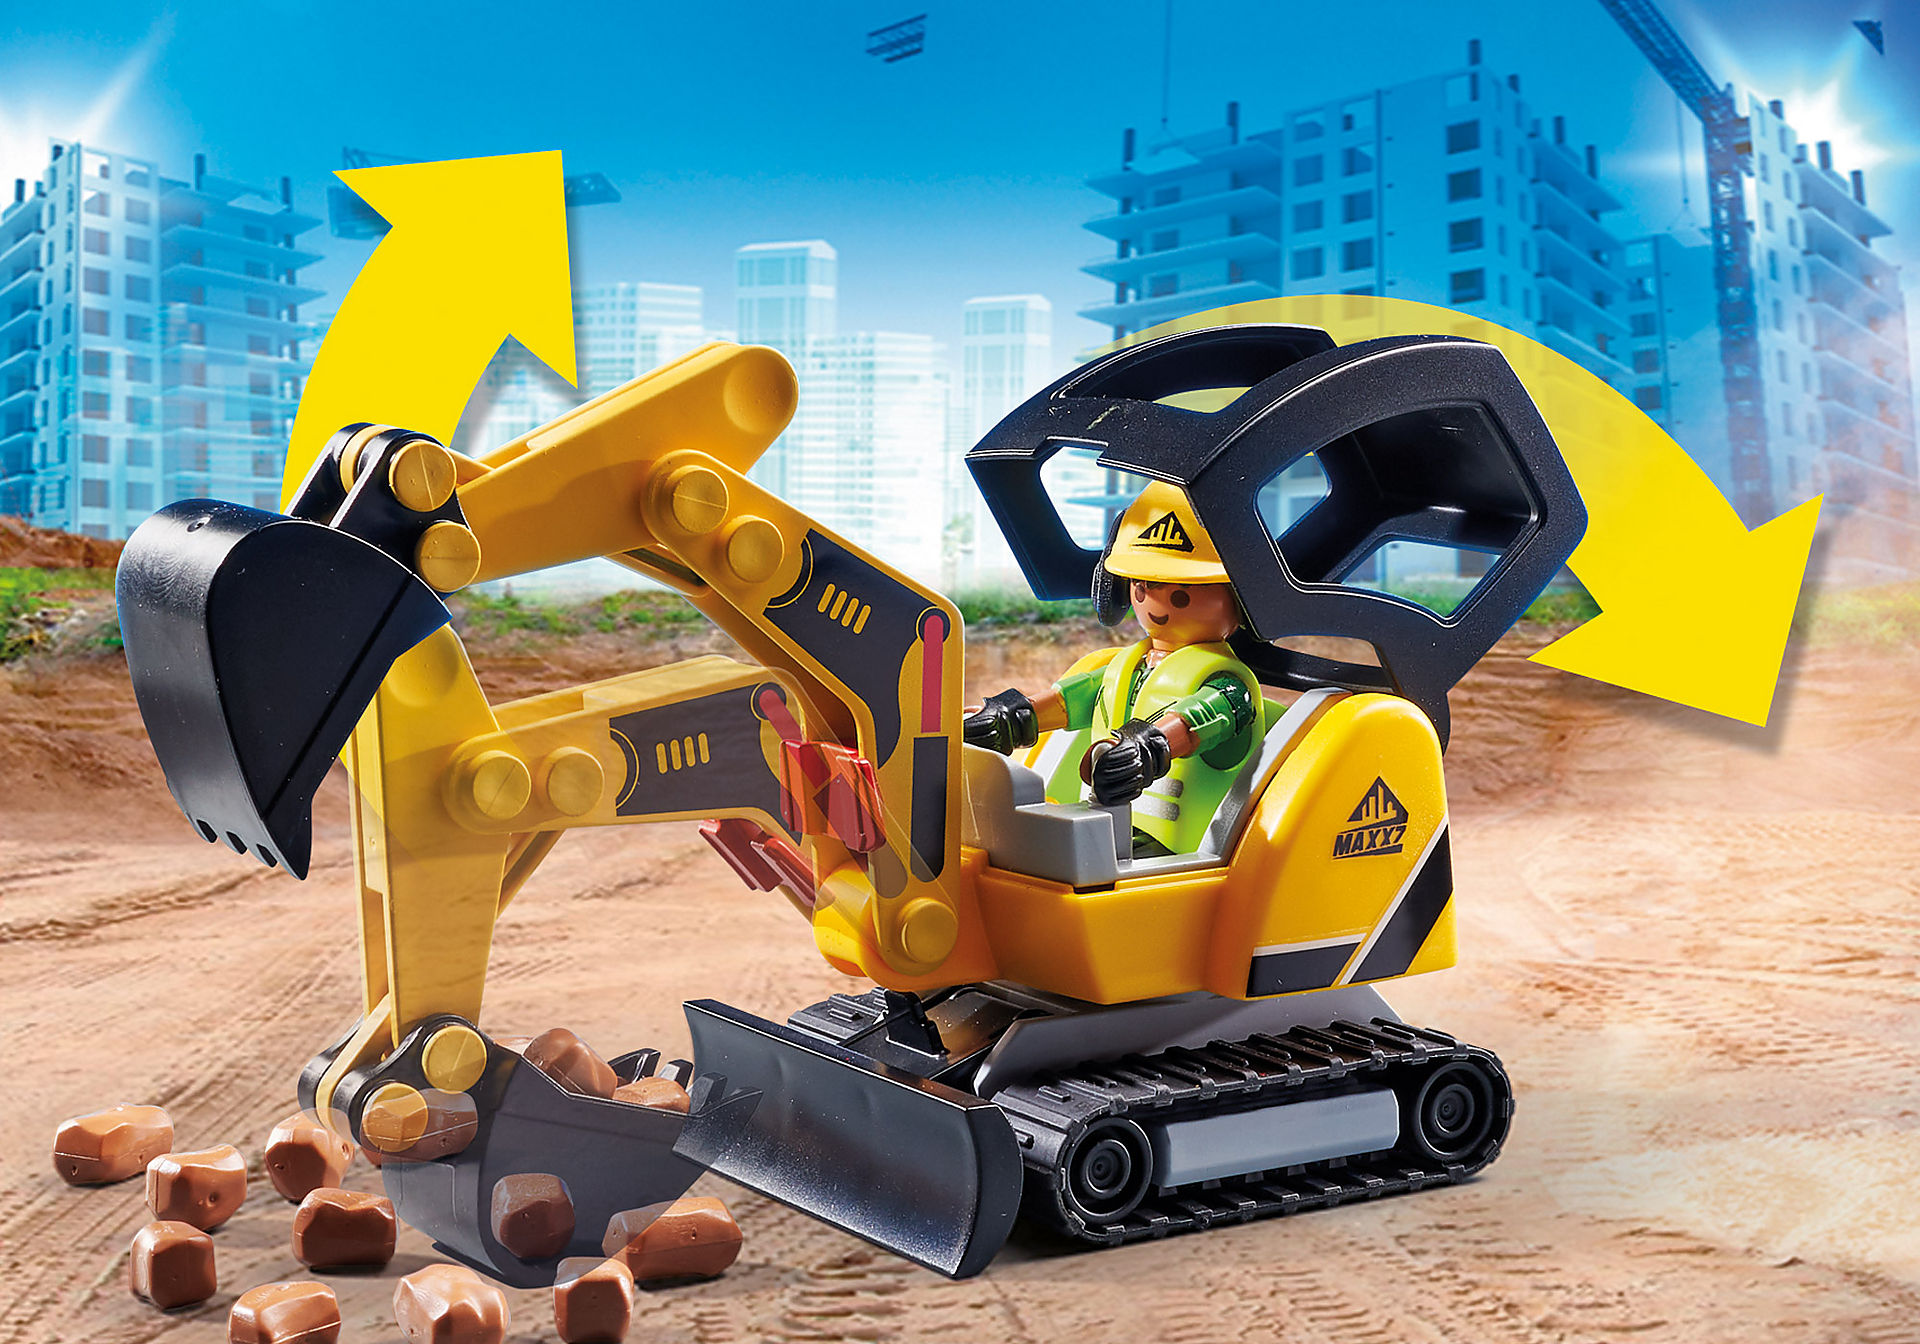 70443 Mini Excavator with Building Section zoom image5